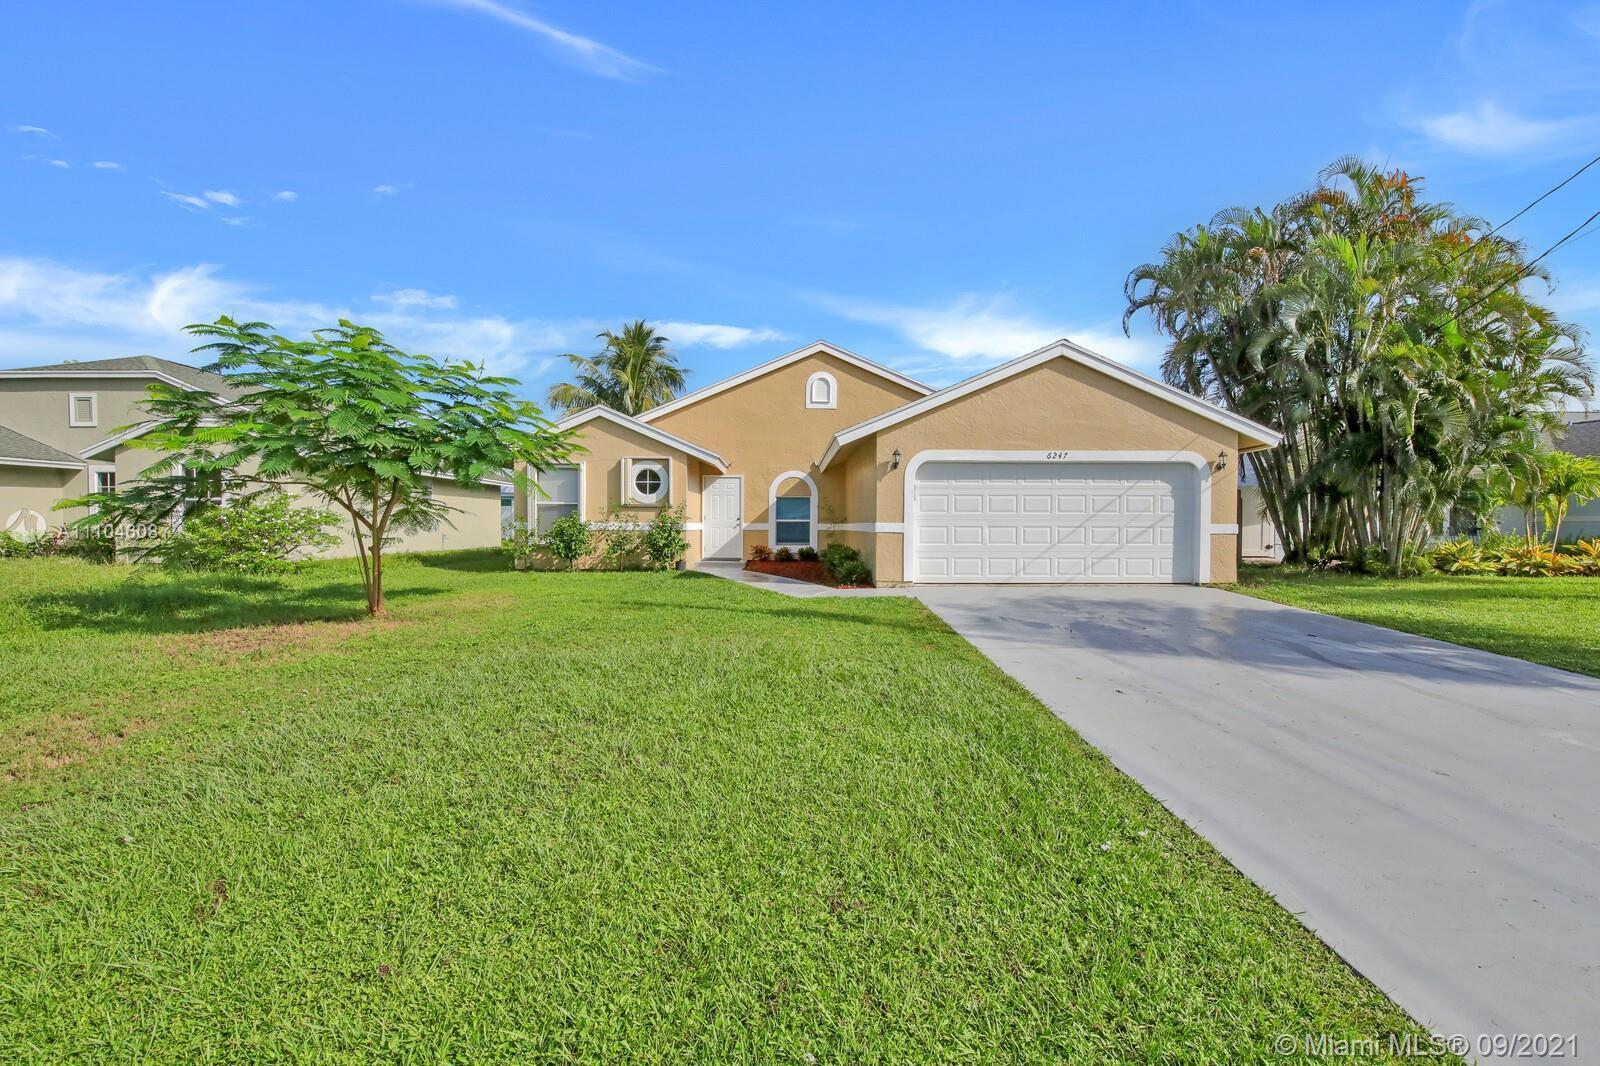 This well maintained 3 bedroom, 2 bath home has a lot to offer. 2017 A/C and 2021 Roof. The large li